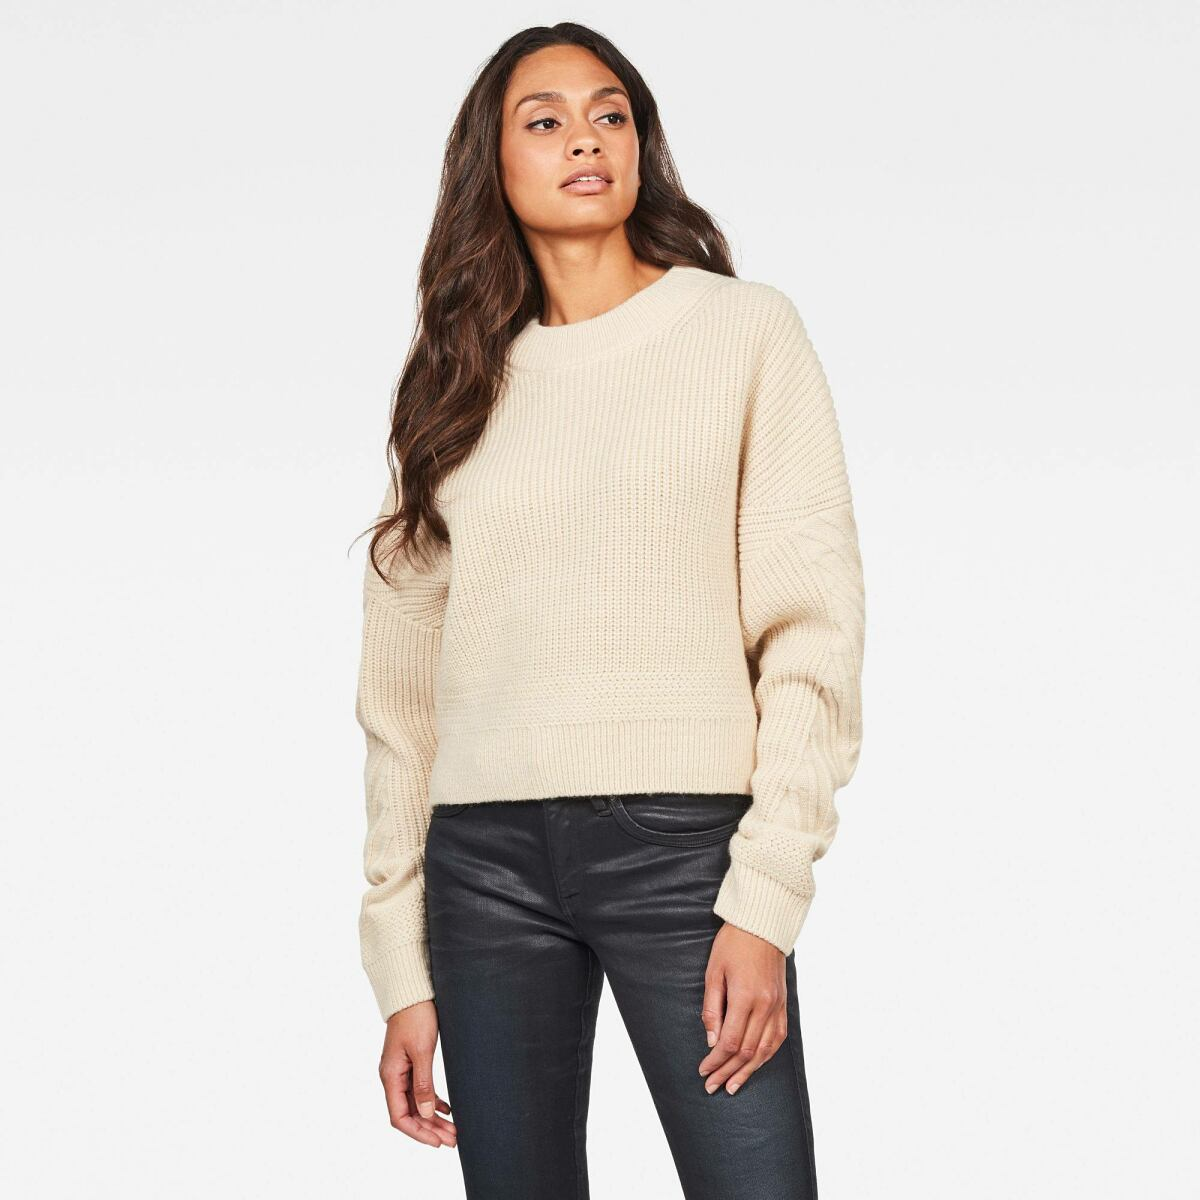 White Woman Knitwear Weet Turtleneck Knitted Sweater G-Star WOMEN